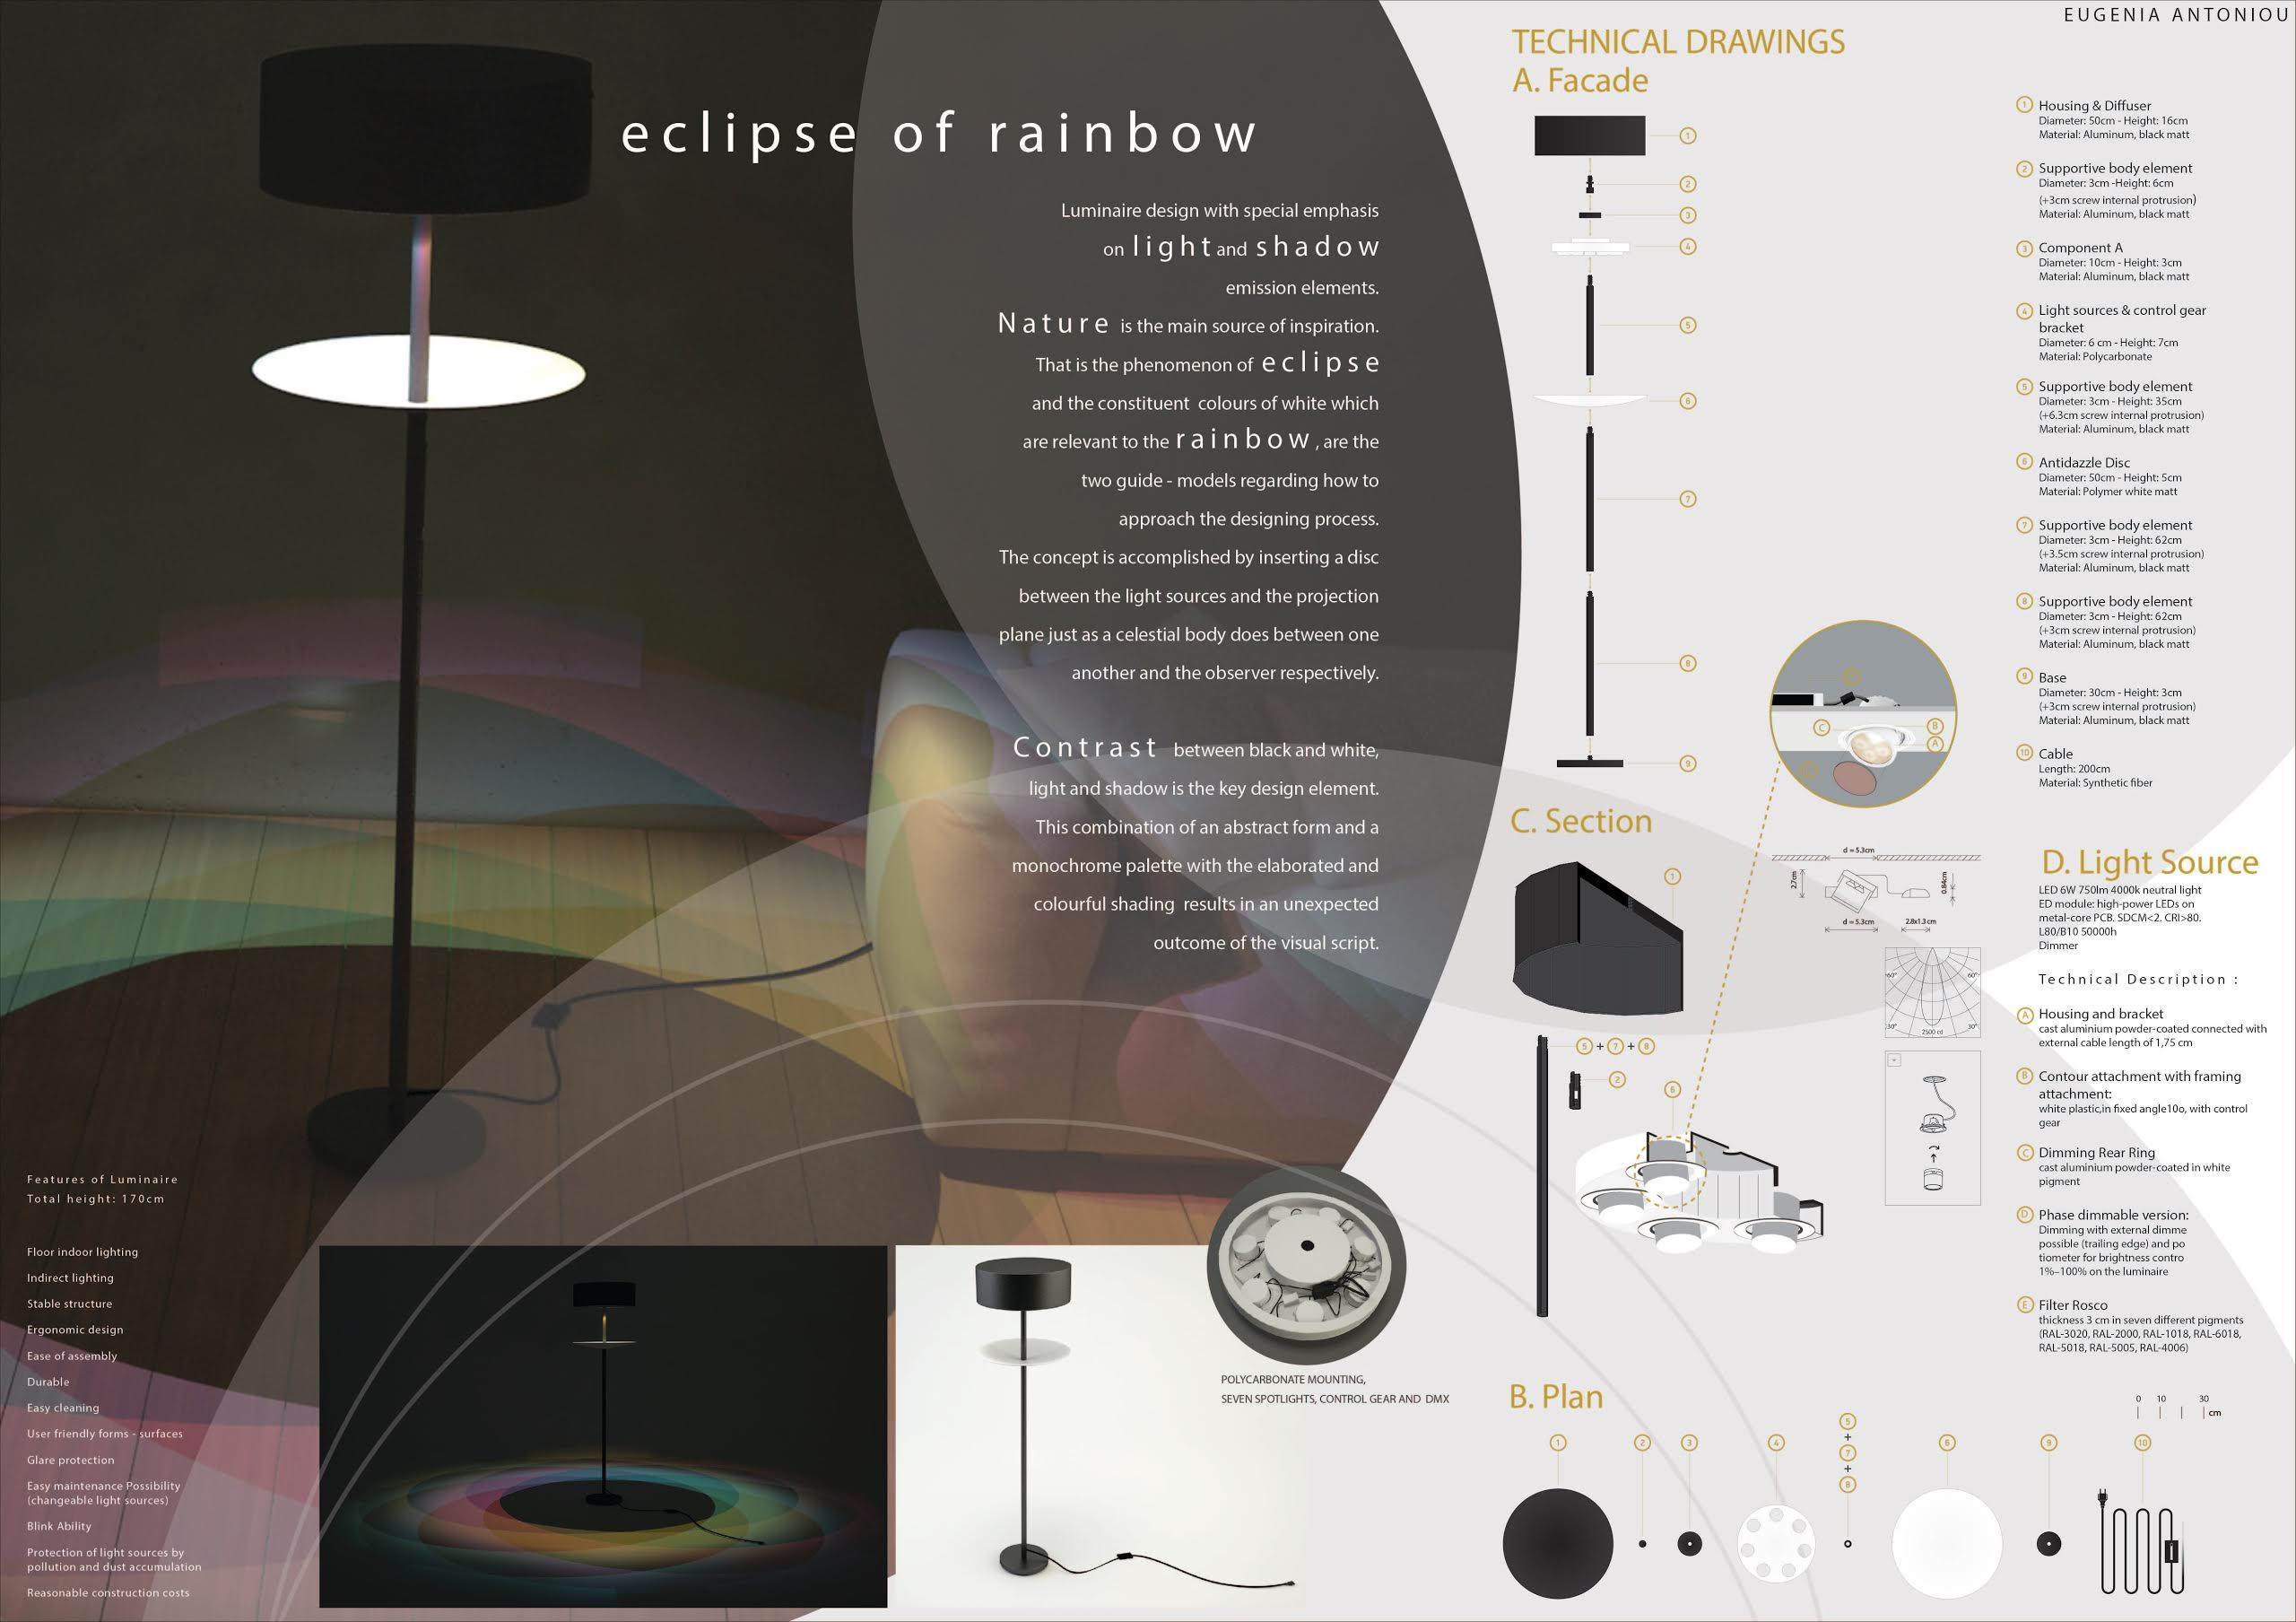 Eclipse-of-Rainbow-Eugenia-Antoniou-Sias-Blog-04